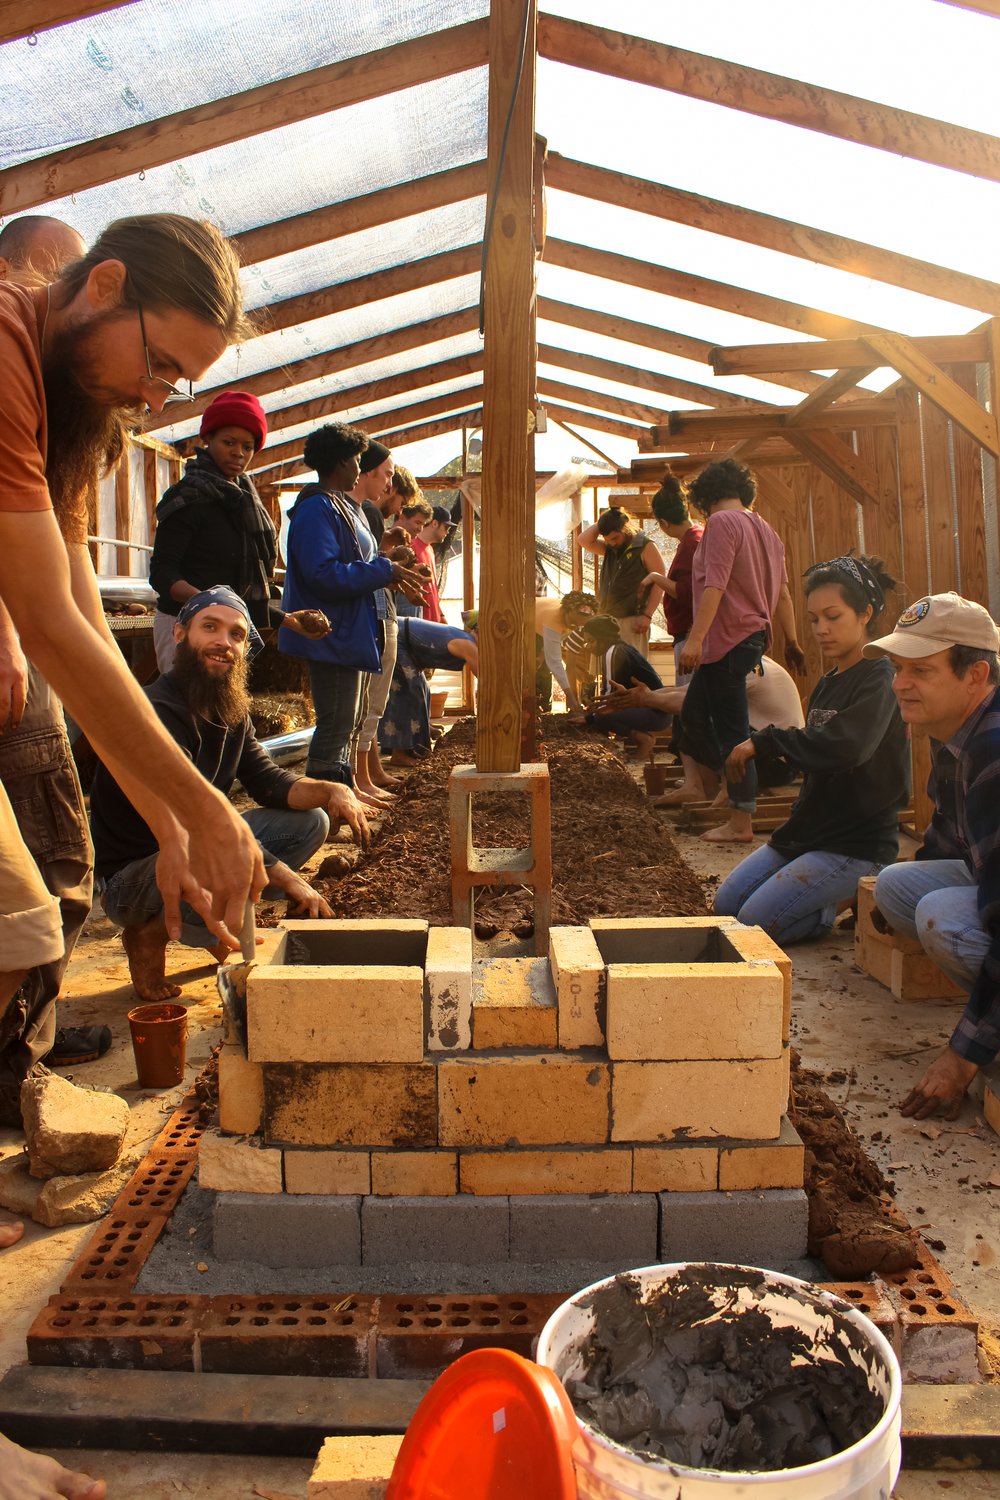 Aviva with the Mud Builders of Atlanta and Corwin May with Georgia Tech's Arkfab lead volunteers at Wheat Street Garden as they build the cob thermal mass part of the rocket stove.